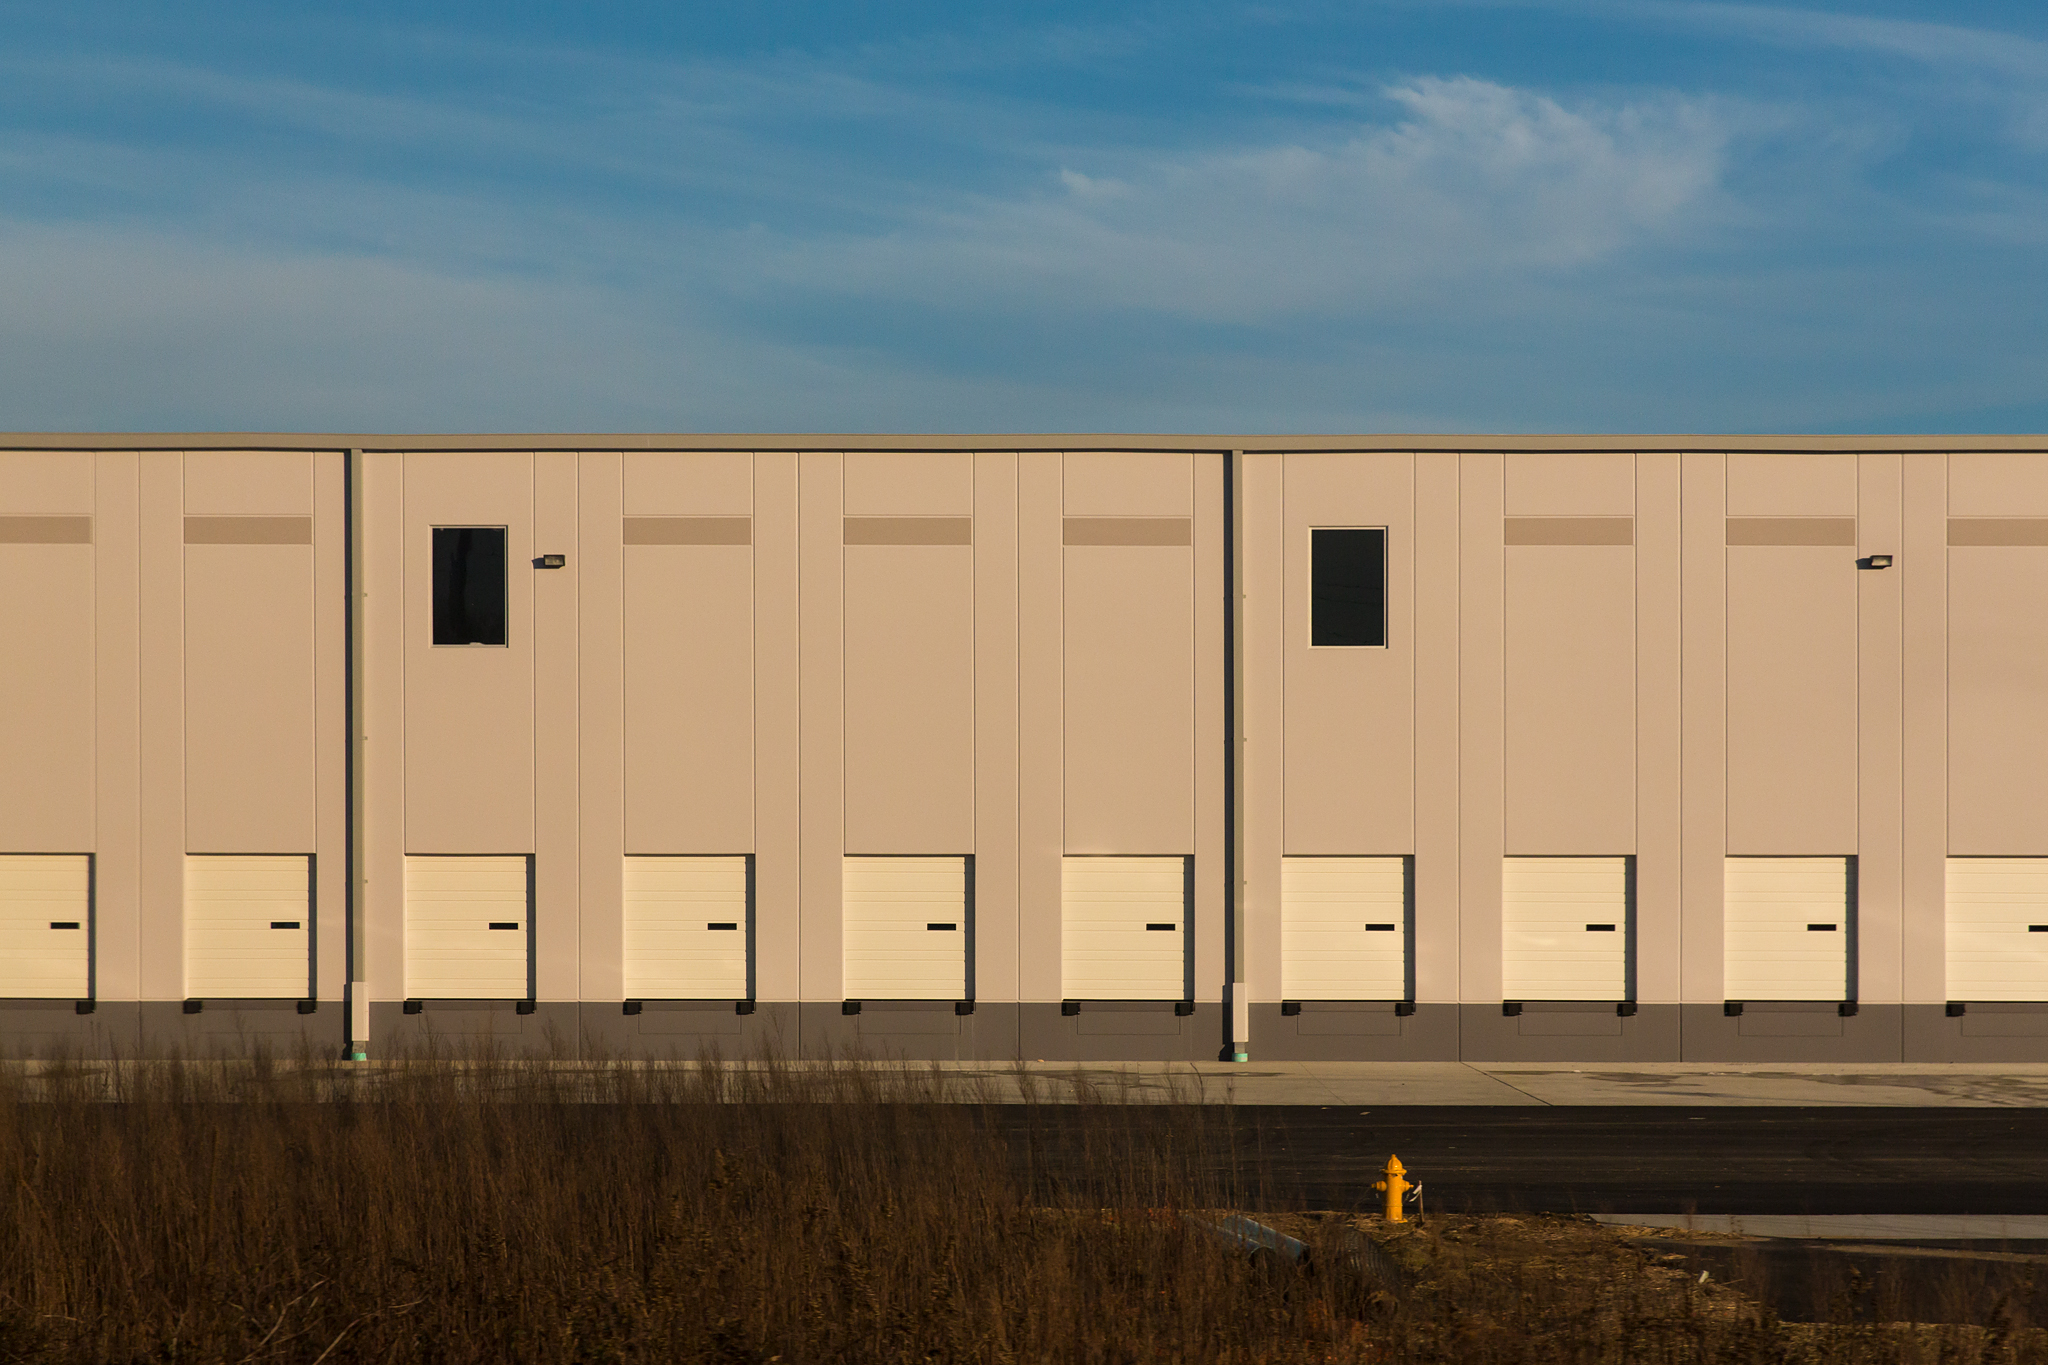 Ikea Warehouse and Distribution Center - Perryville, MD 2.7.2016 - WAS-NYP